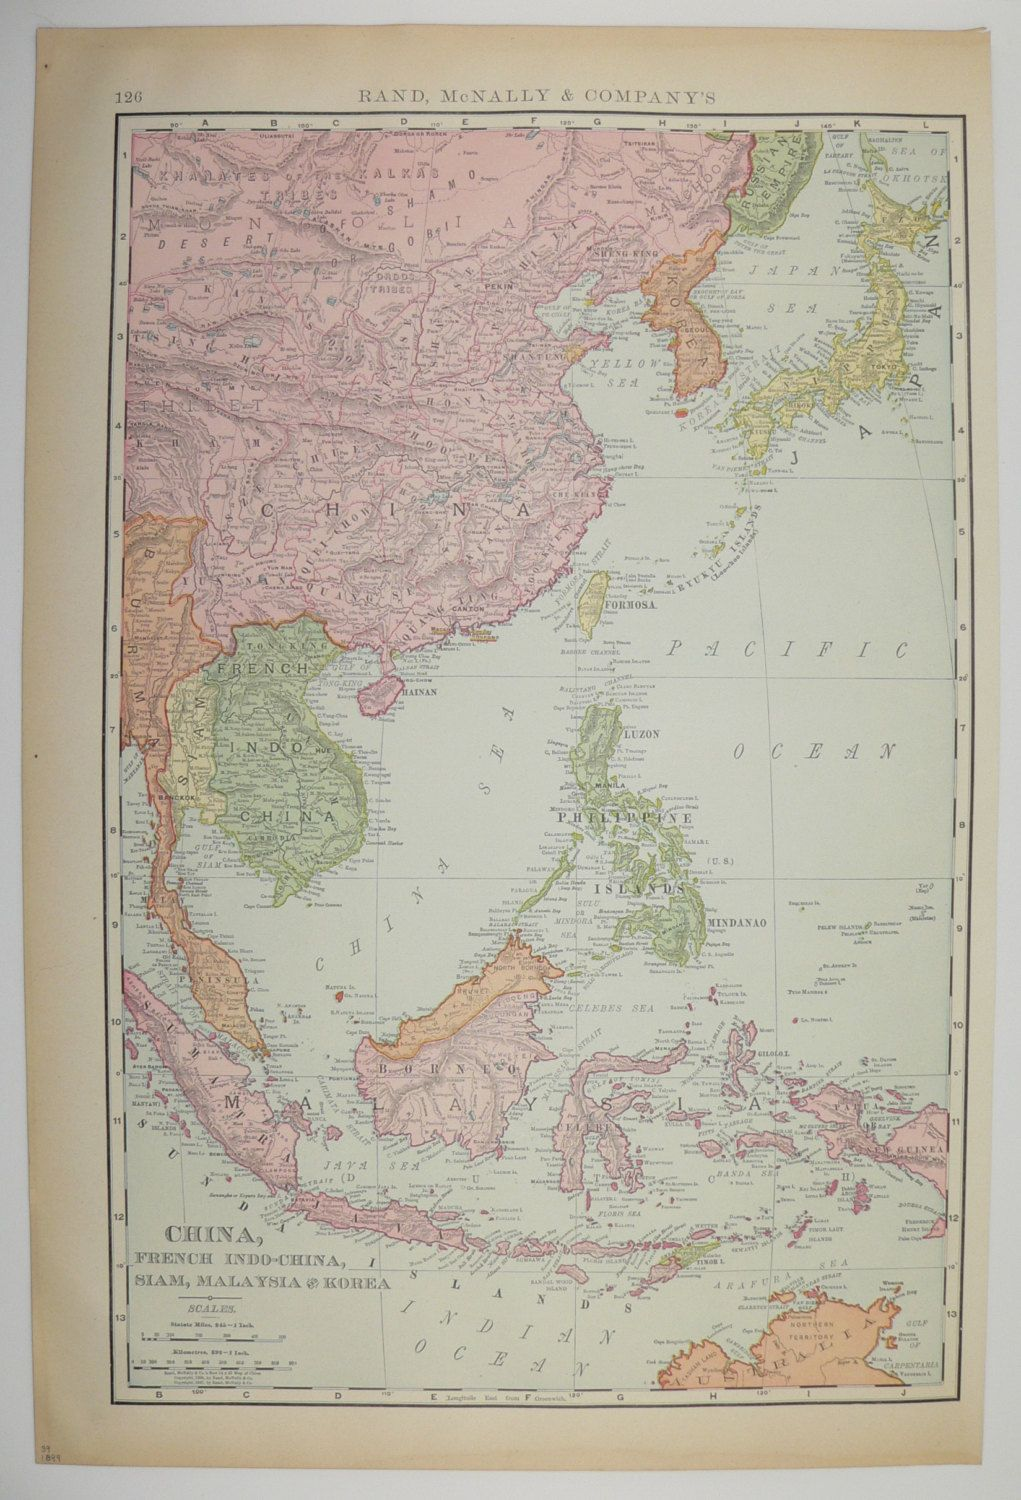 Old china malaysia korea map antique siam vintage 1899 japan taiwan old china malaysia korea map antique siam vintage 1899 japan taiwan philippines borneo java sumatra travel gumiabroncs Choice Image